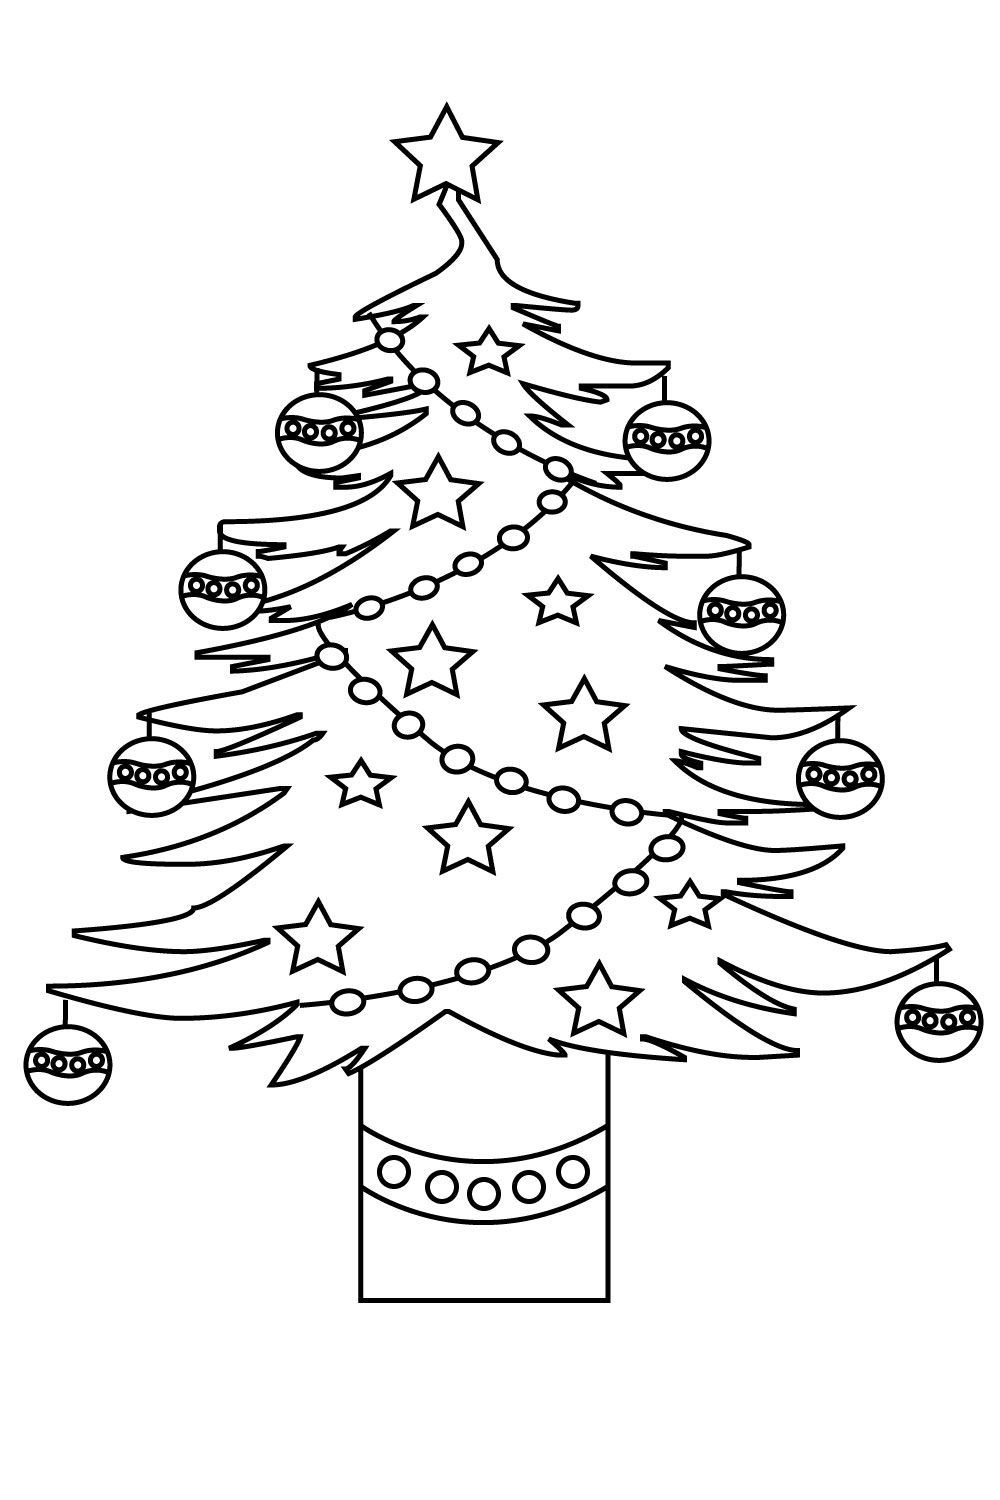 Christmas Tree Coloring Pages For Kids Free Printable Adults Toddlers Christmas Tree Coloring Page Tree Coloring Page Printable Flower Coloring Pages